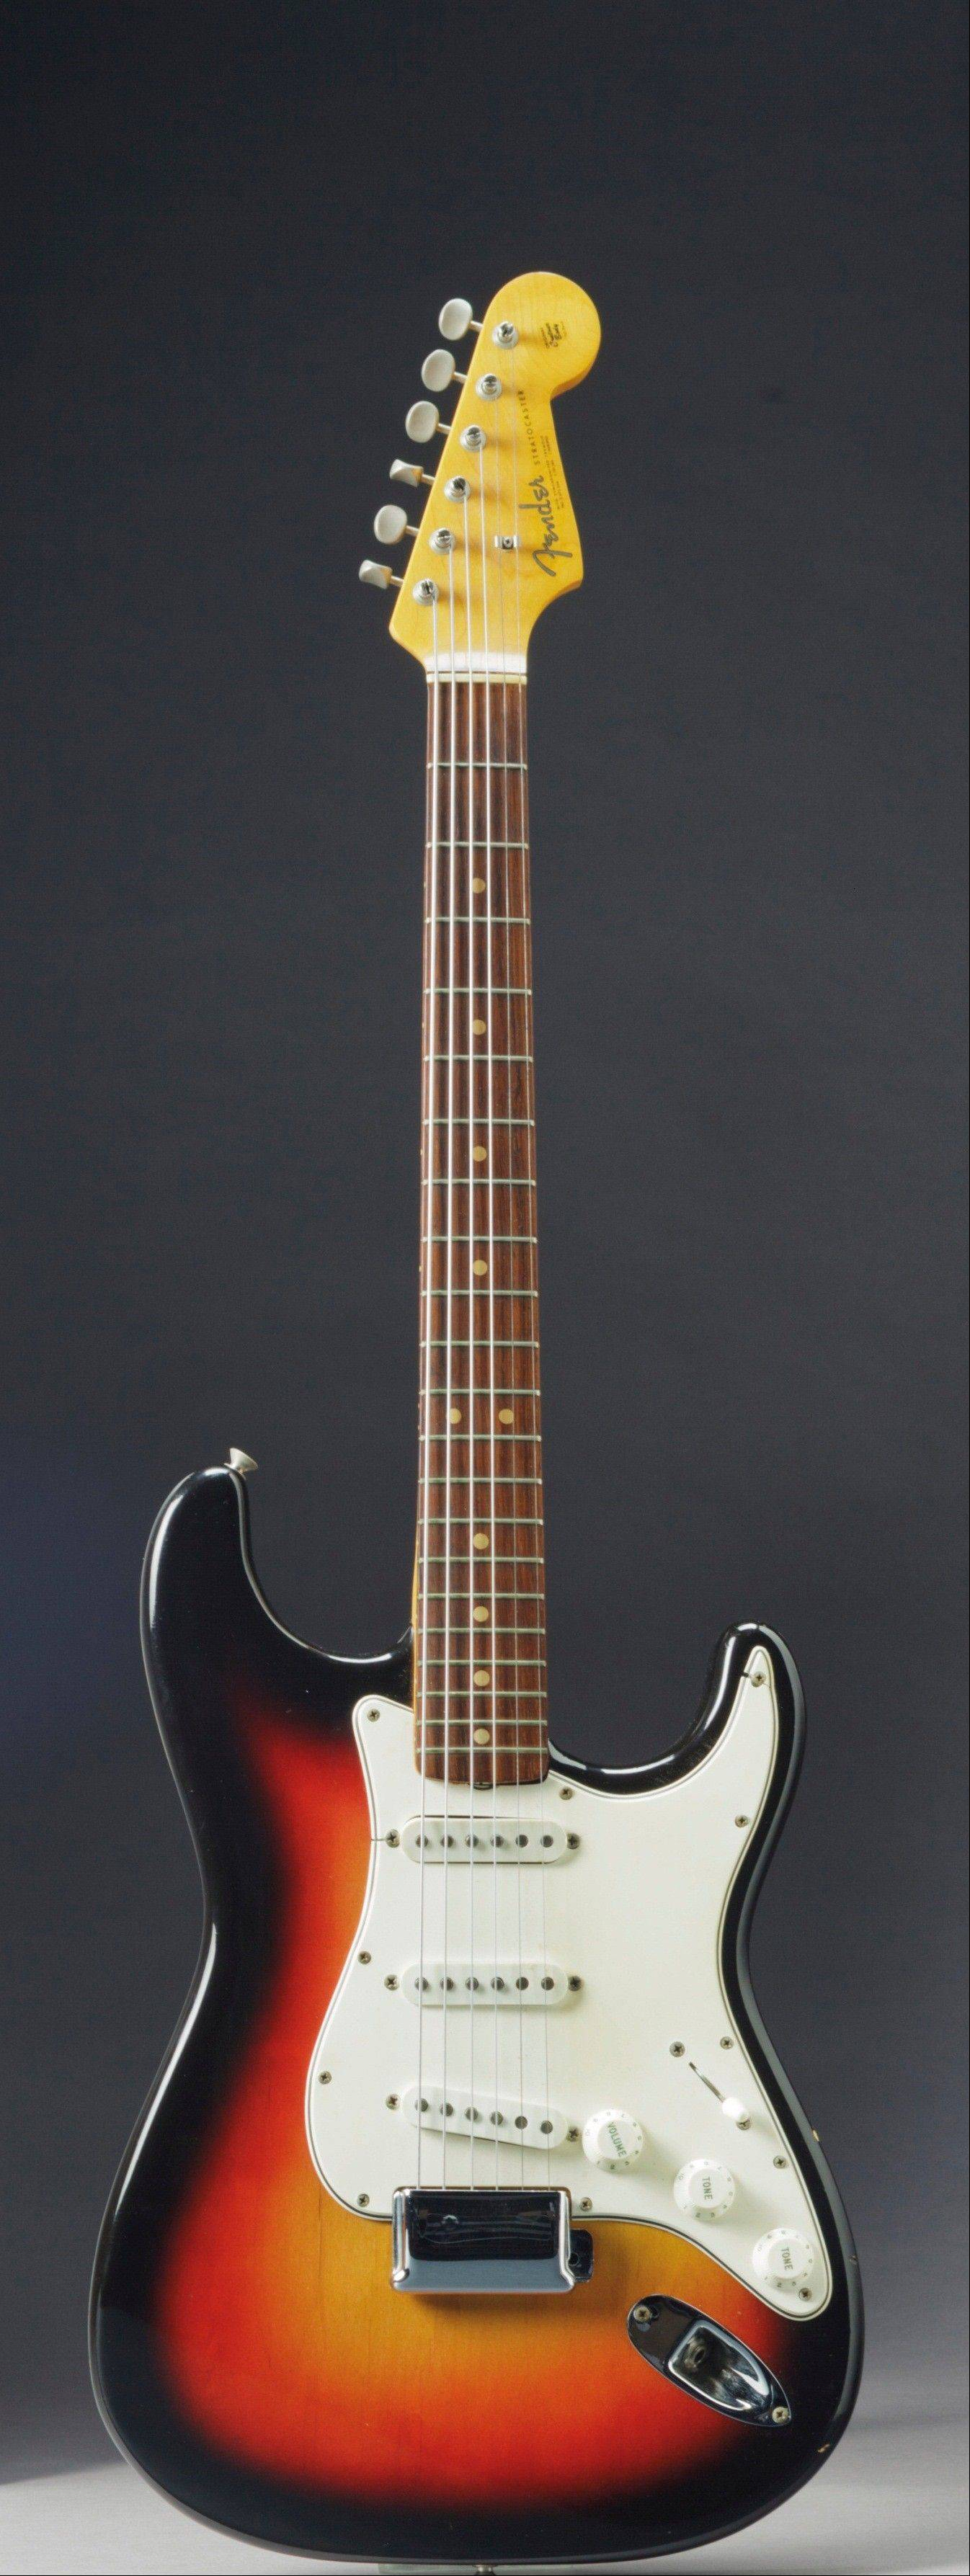 The Fender Stratocaster a young Bob Dylan played at the historic 1965 Newport Folk Festival could bring as much as half a million dollars when it comes up for auction at Christie's New York on Dec. 6. The festival marked the first time Dylan went electric, a defining moment that marked his move from acoustic folk to electric rock and roll, drawing boos from folk-music purists.